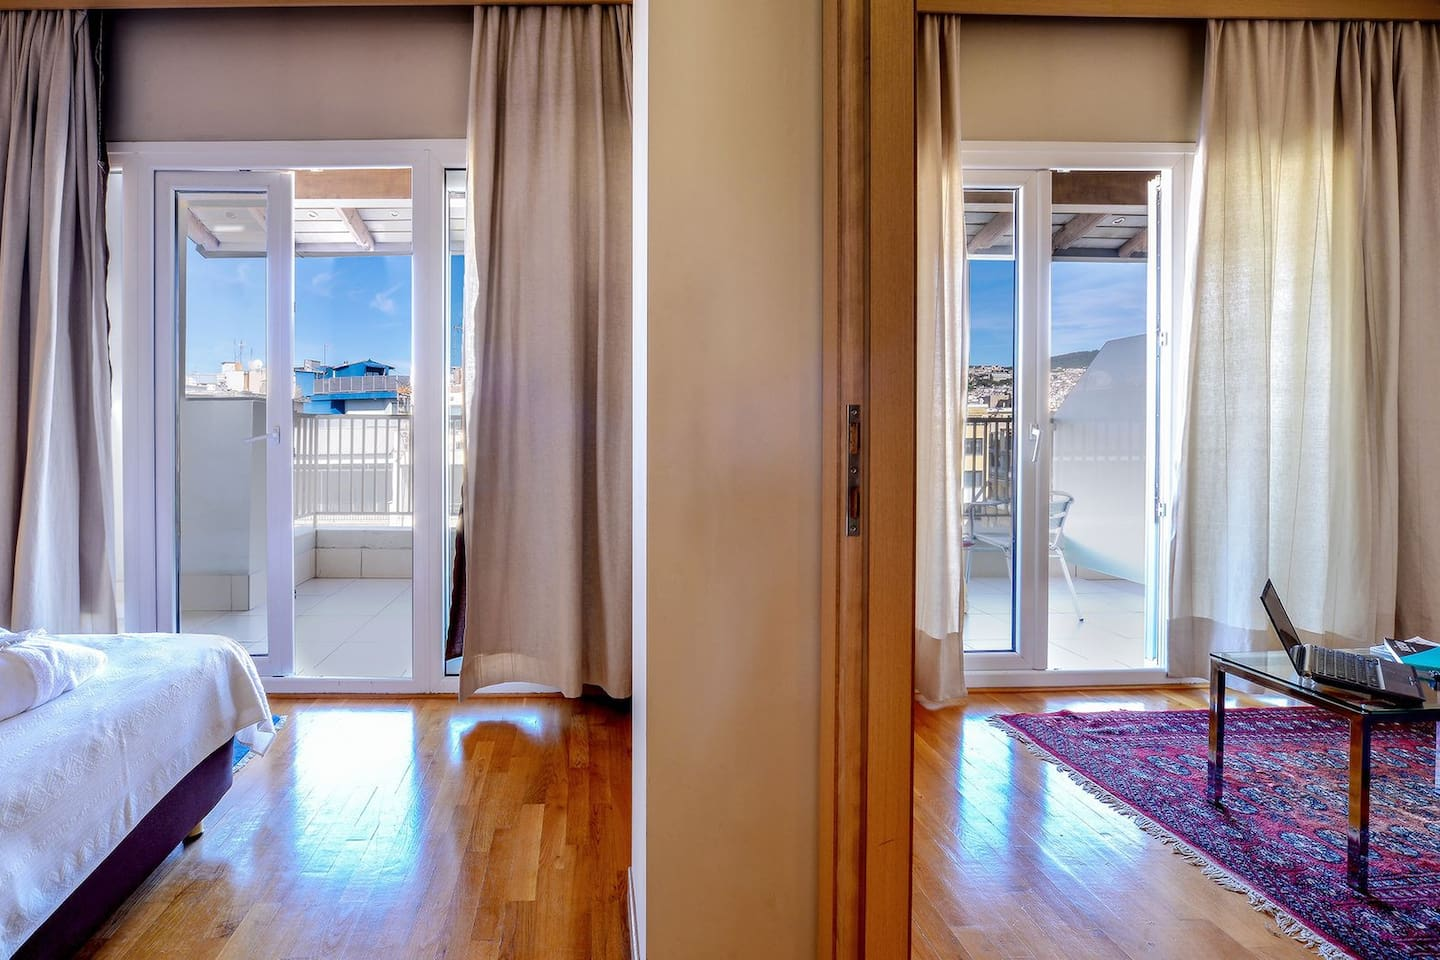 The Penthouse Suite City View is situated on the highest floor of the Astoria with an amazing private balcony. Separate living room for business meetings and a bedroom with a second exit to your balcony. The bathroom is fitted with a jacuzzi bathtub.